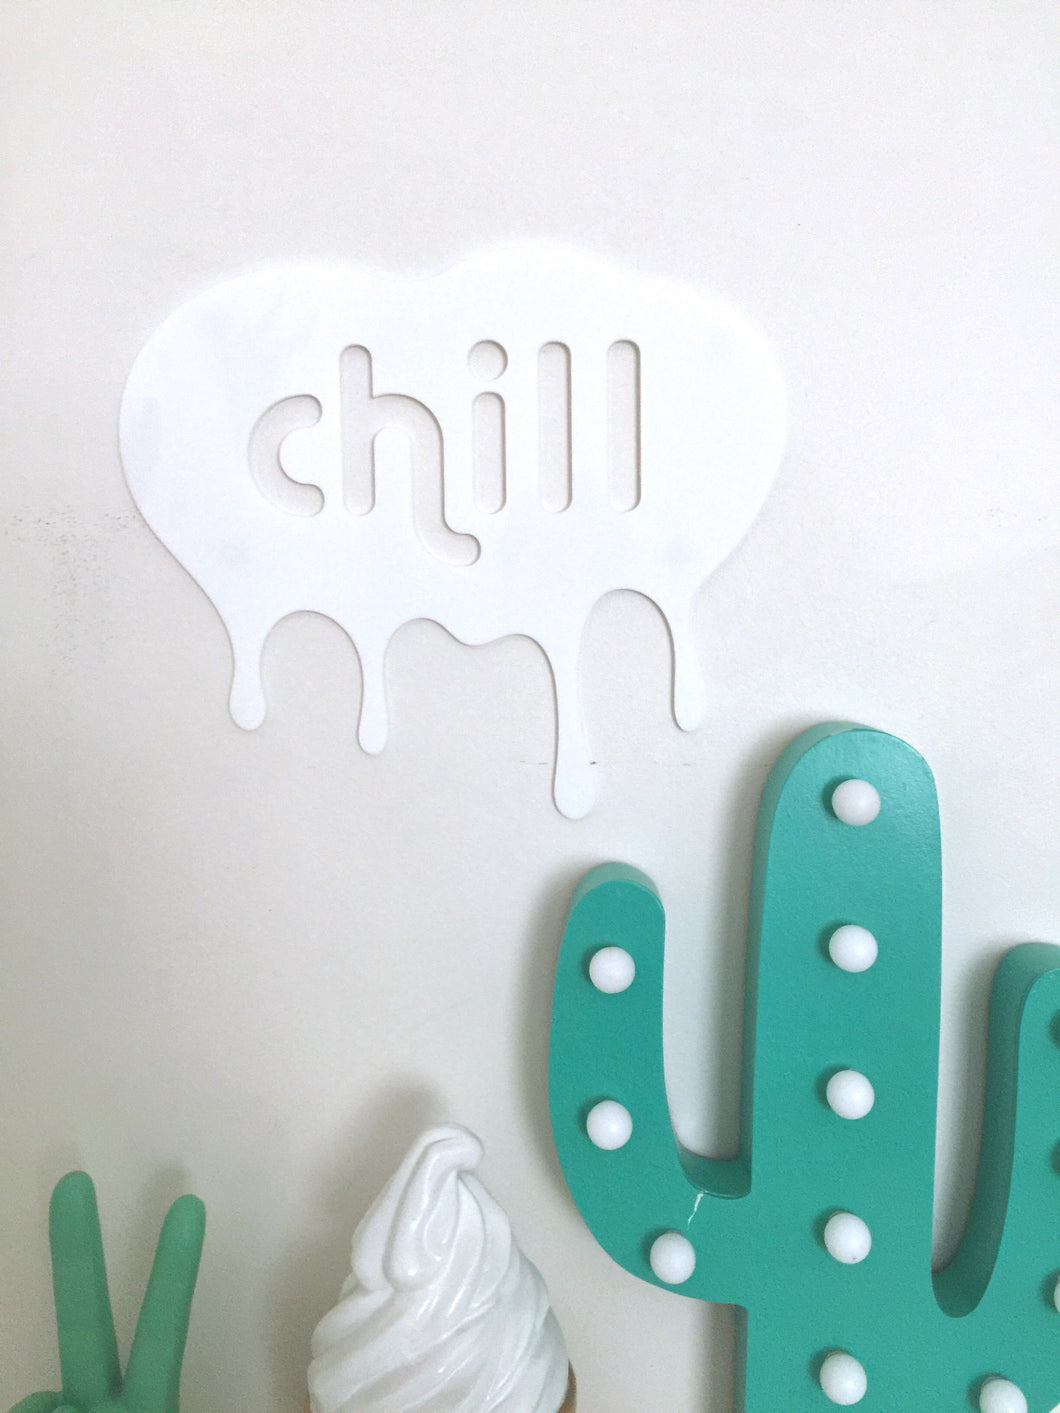 CHILL White Single Layer Acrylic Wall Plaque Kids Room Decor